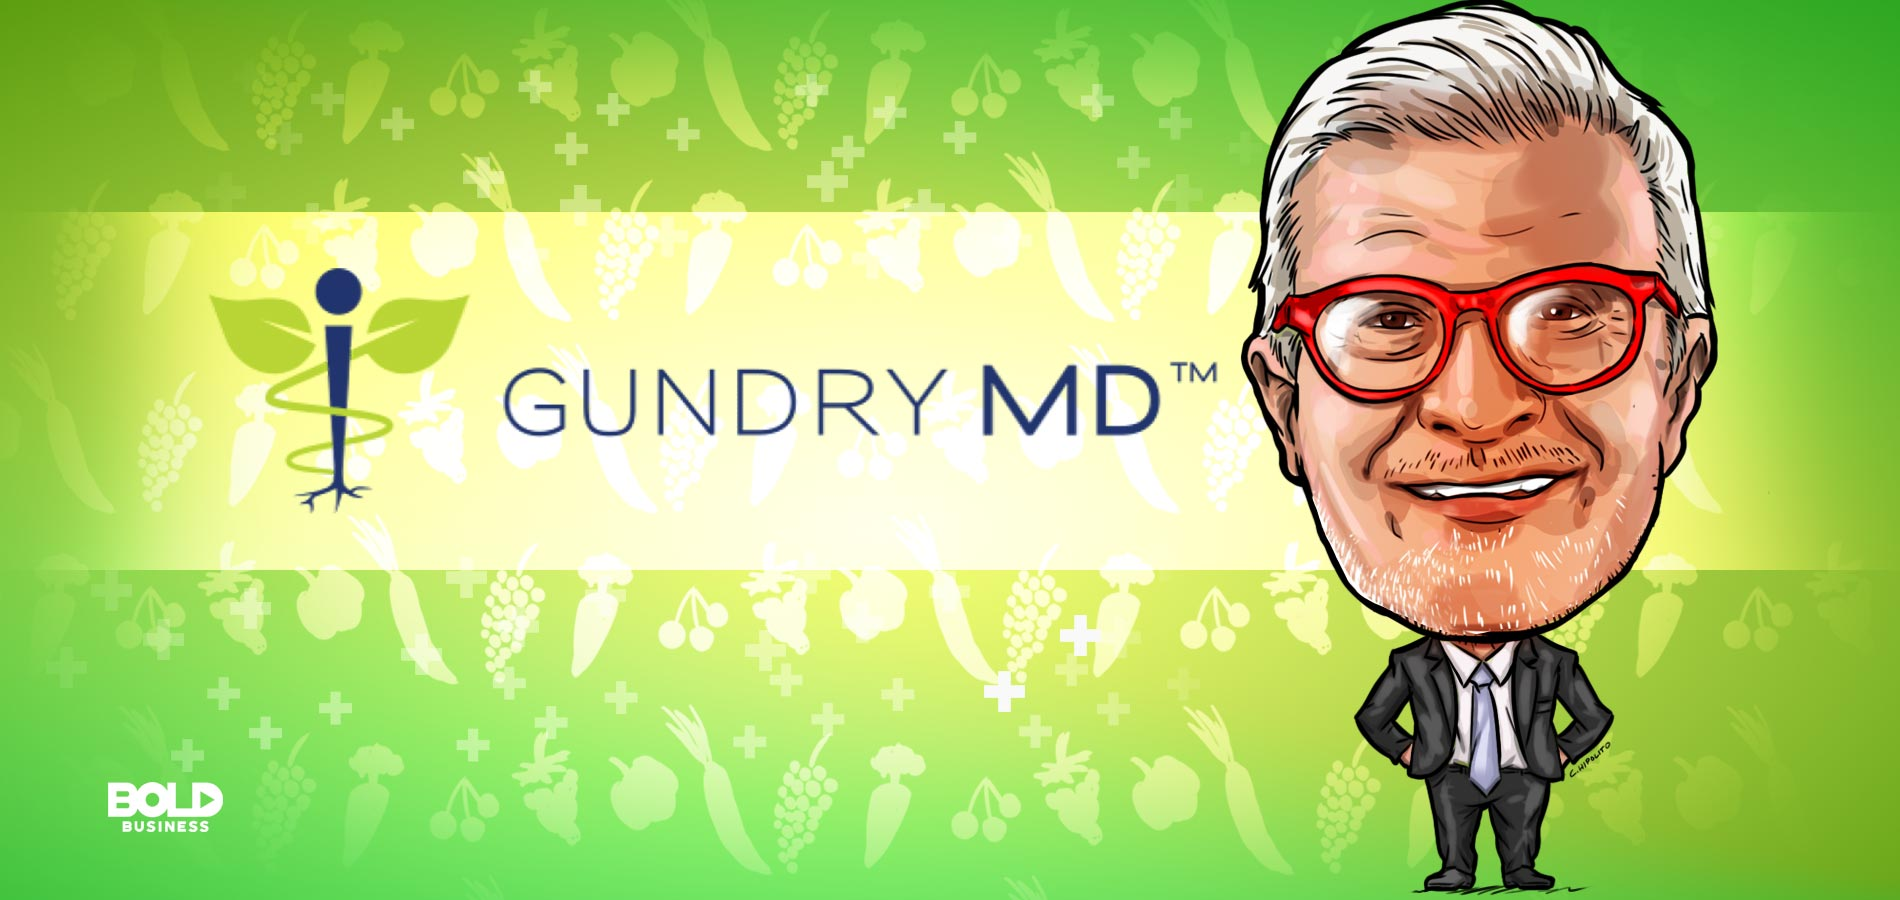 cartoon caricature of Steven Gundry, the doctor behind the Dr. Gundry diet, posing as the bold leader spotlight of the week